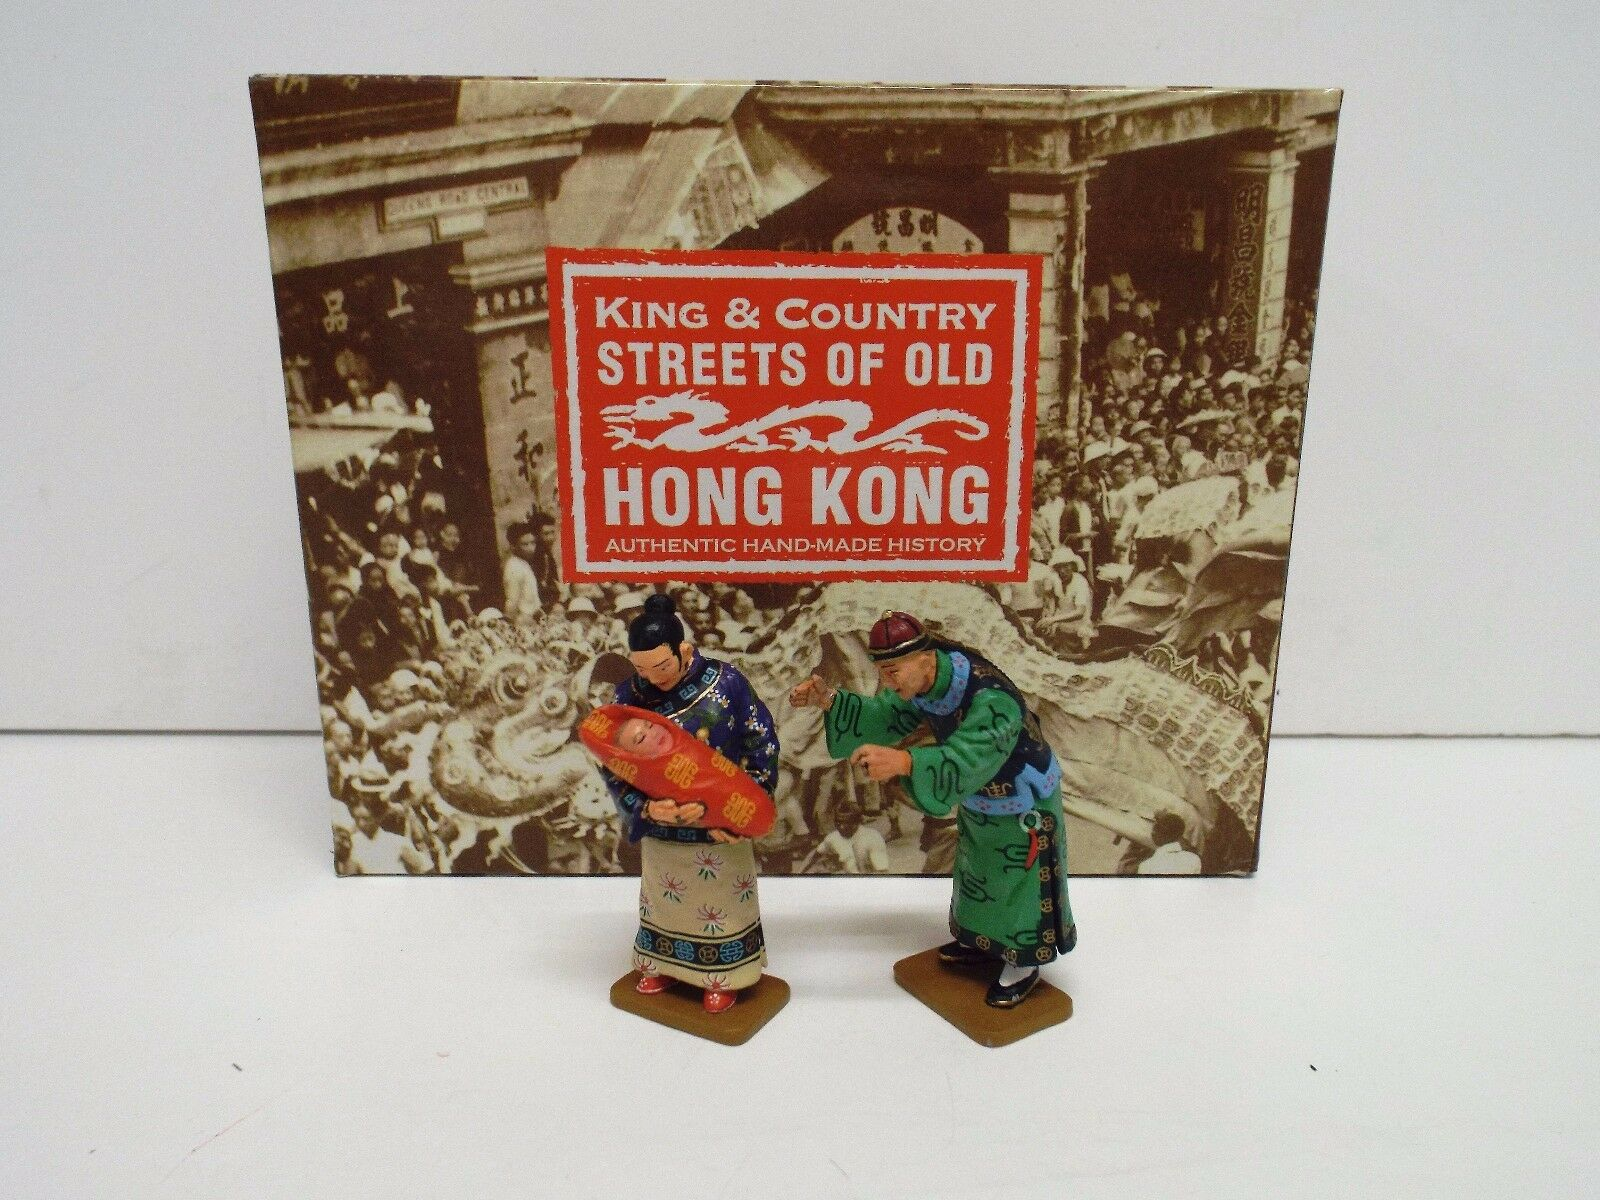 KING AND COUNTRY HK172M HK172M S.O.O.H.K HAPPY FAMILY SET RETIRED BOXED (BS2114)